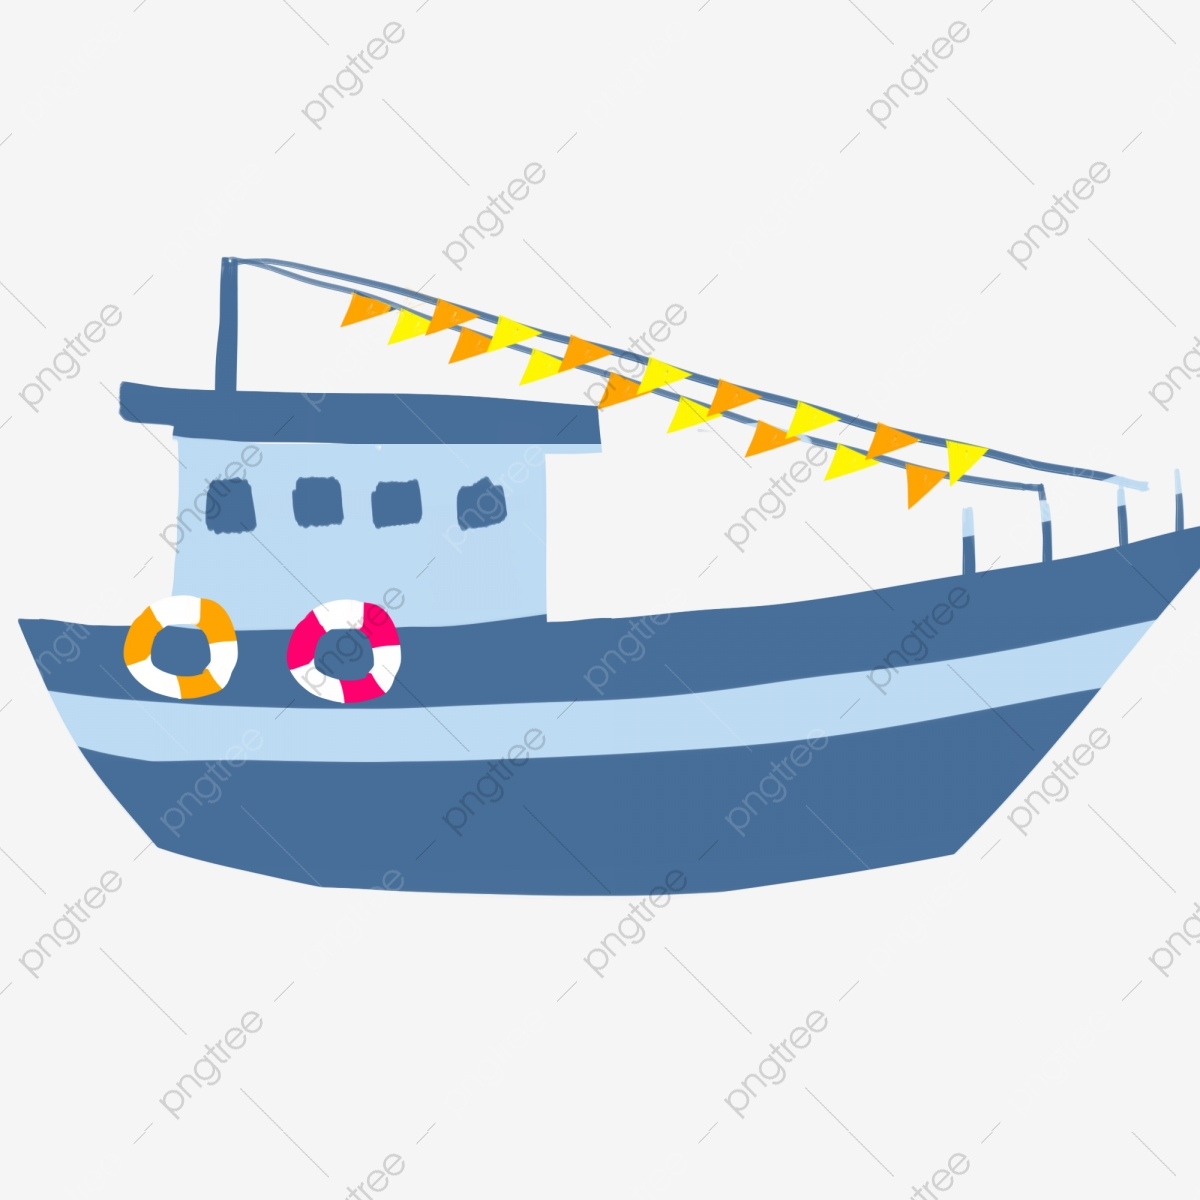 blue ship beautiful ship ship illustration cartoon ship ship decoration yellow flag round lifebuoy png transparent clipart image and psd file for free download https pngtree com freepng blue ship beautiful ship ship illustration cartoon ship 3868389 html